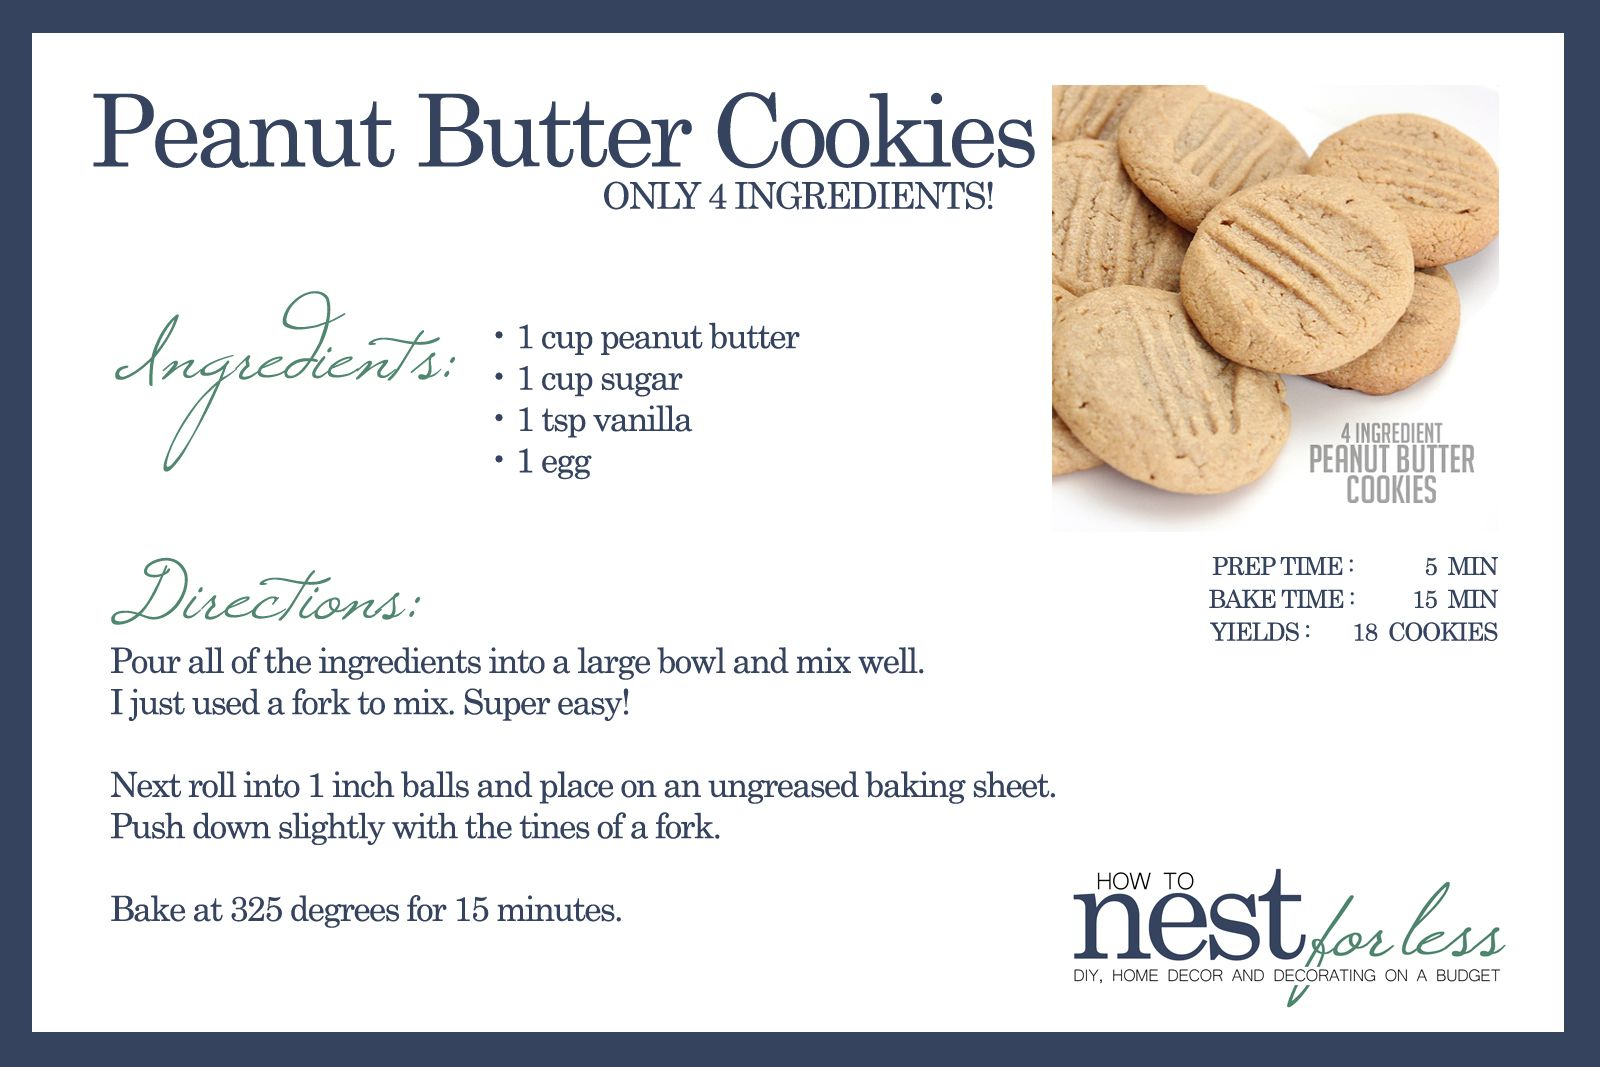 4 Ingredient Peanut Butter Cookies Quick And Easy Recipe Recipe Peanut Butter Cookies Butter Cookies Cookies Recipes Easy Peanut Butter